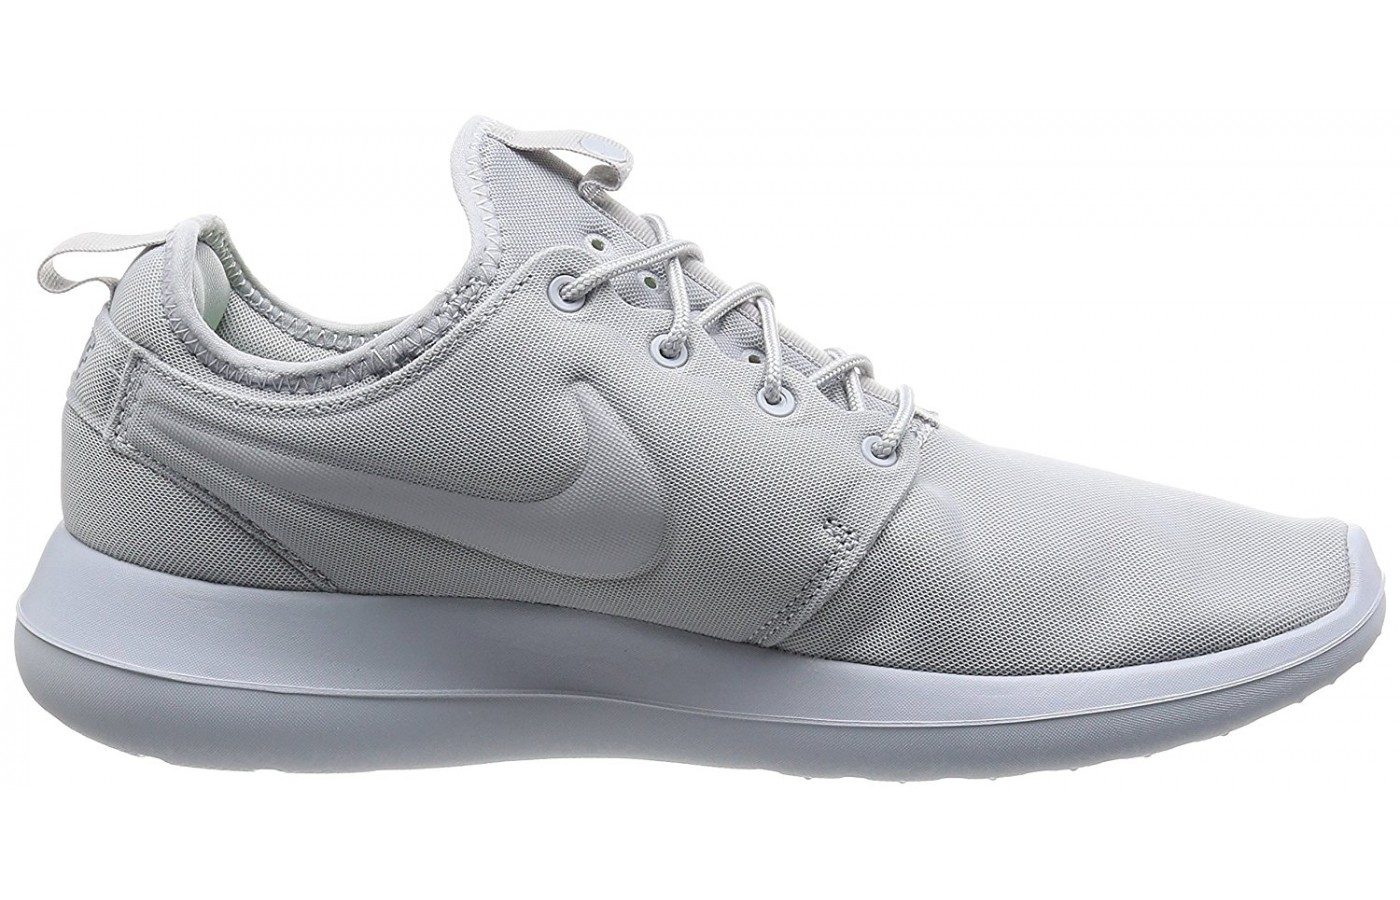 0ea7e43c7c691 Nike Roshe 2 Reviewed   Tested for Performance in 2019